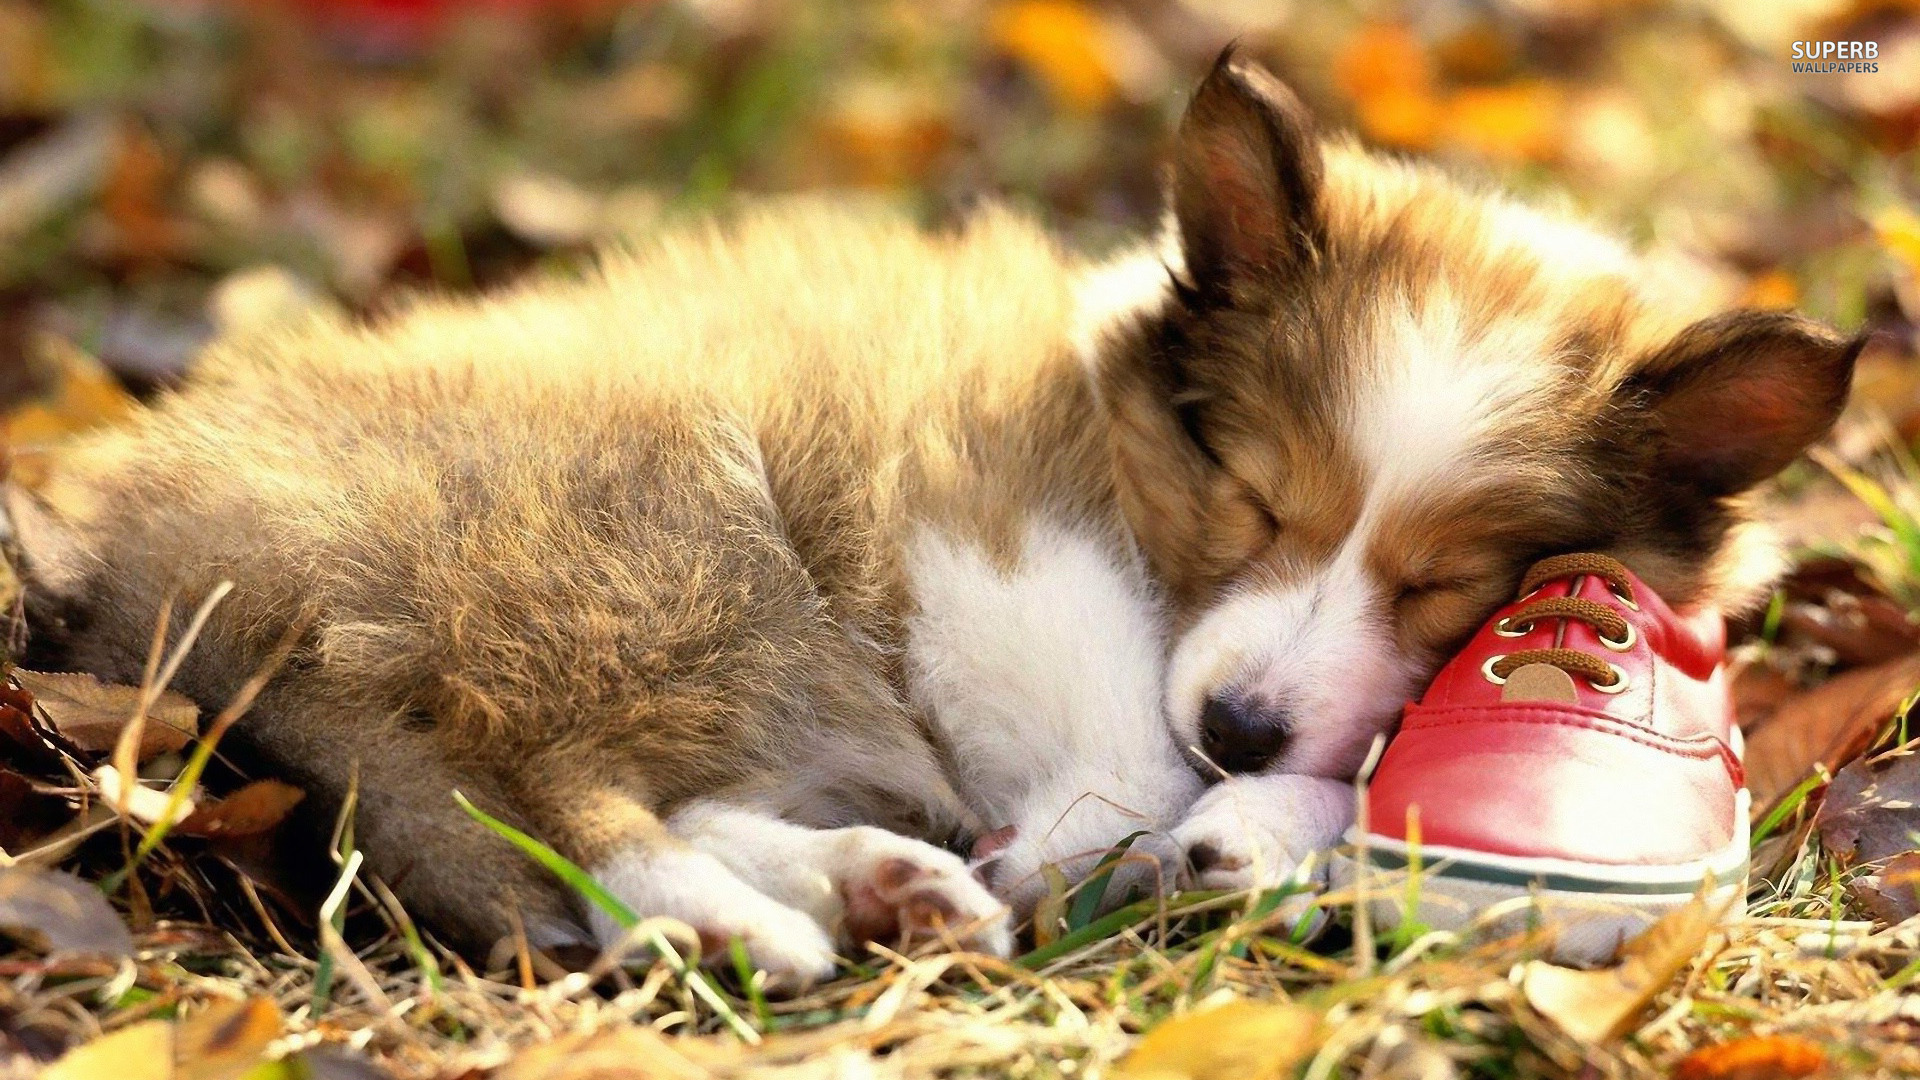 Cute-Welsh-Corgi-Puppy-Desktop-a-1920x1080-px-KB-Animal-x-1920x1080-black-wallpaper-wp3804272